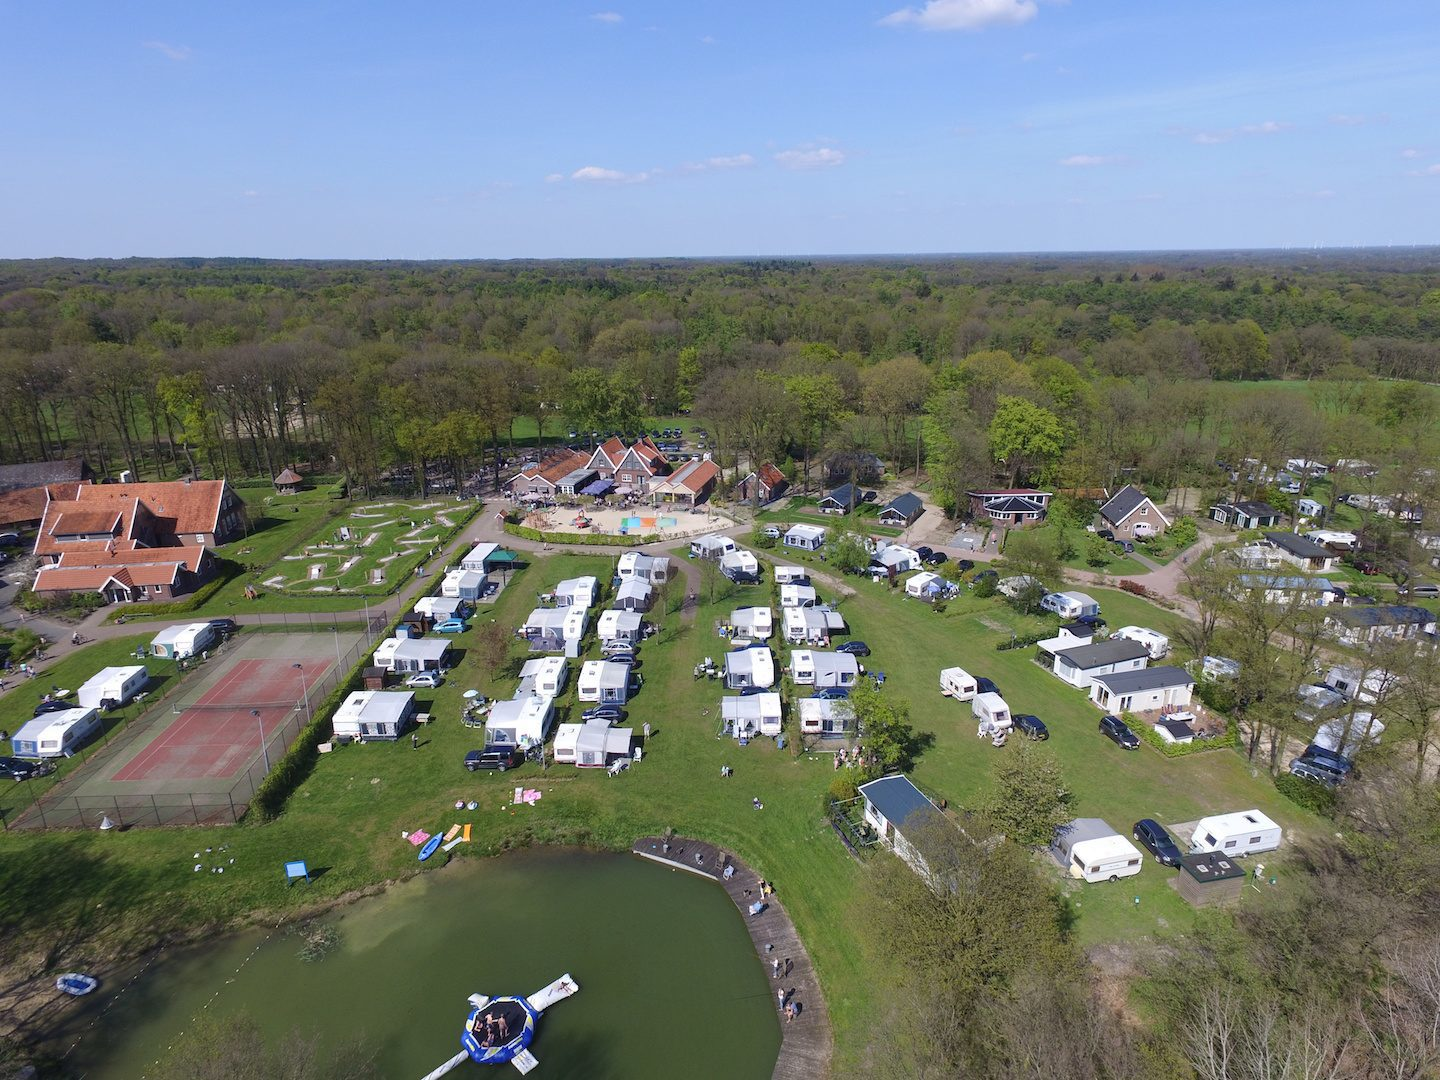 Camping Oldenzaal